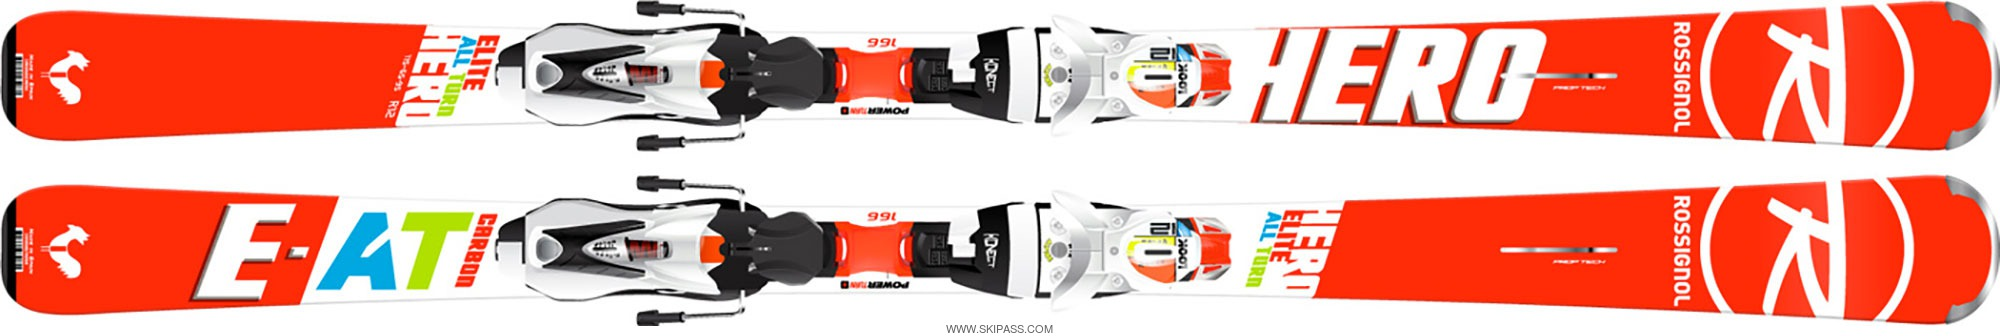 Rossignol Hero Elite All Turn Carbon